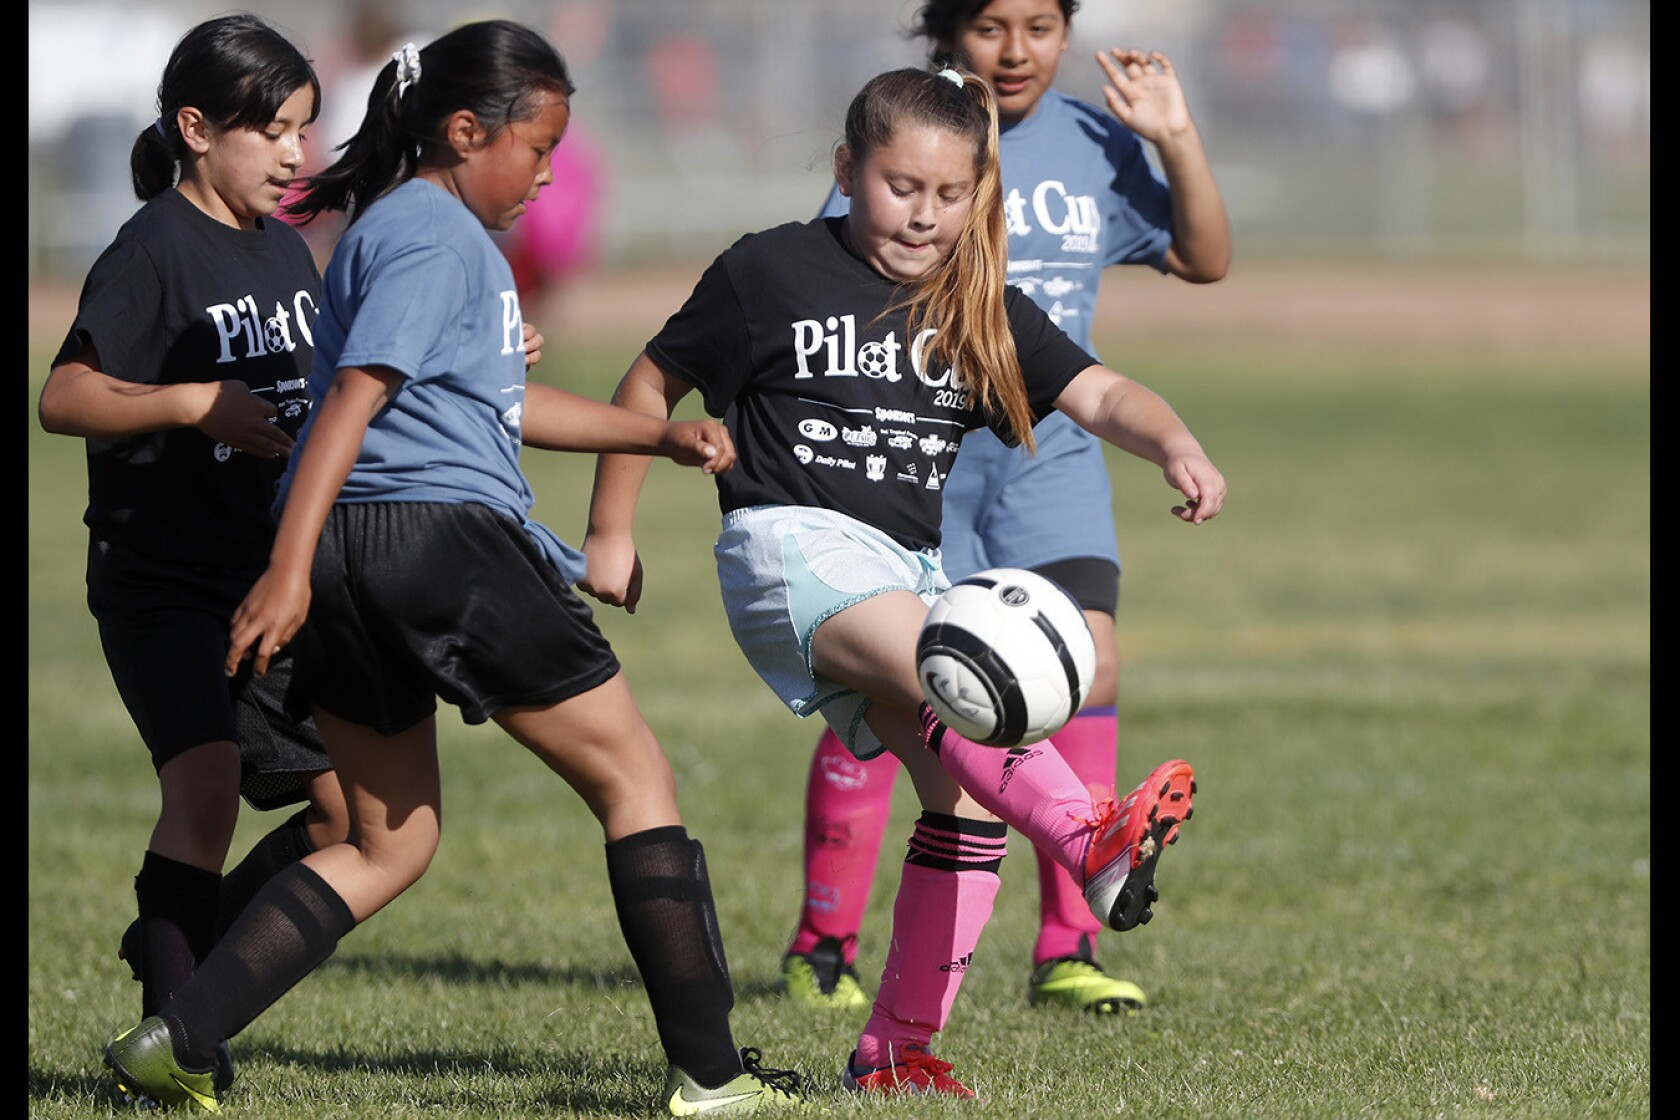 aebc4b7f Rea and College Park play to draw in Daily Pilot Cup girls' soccer ...